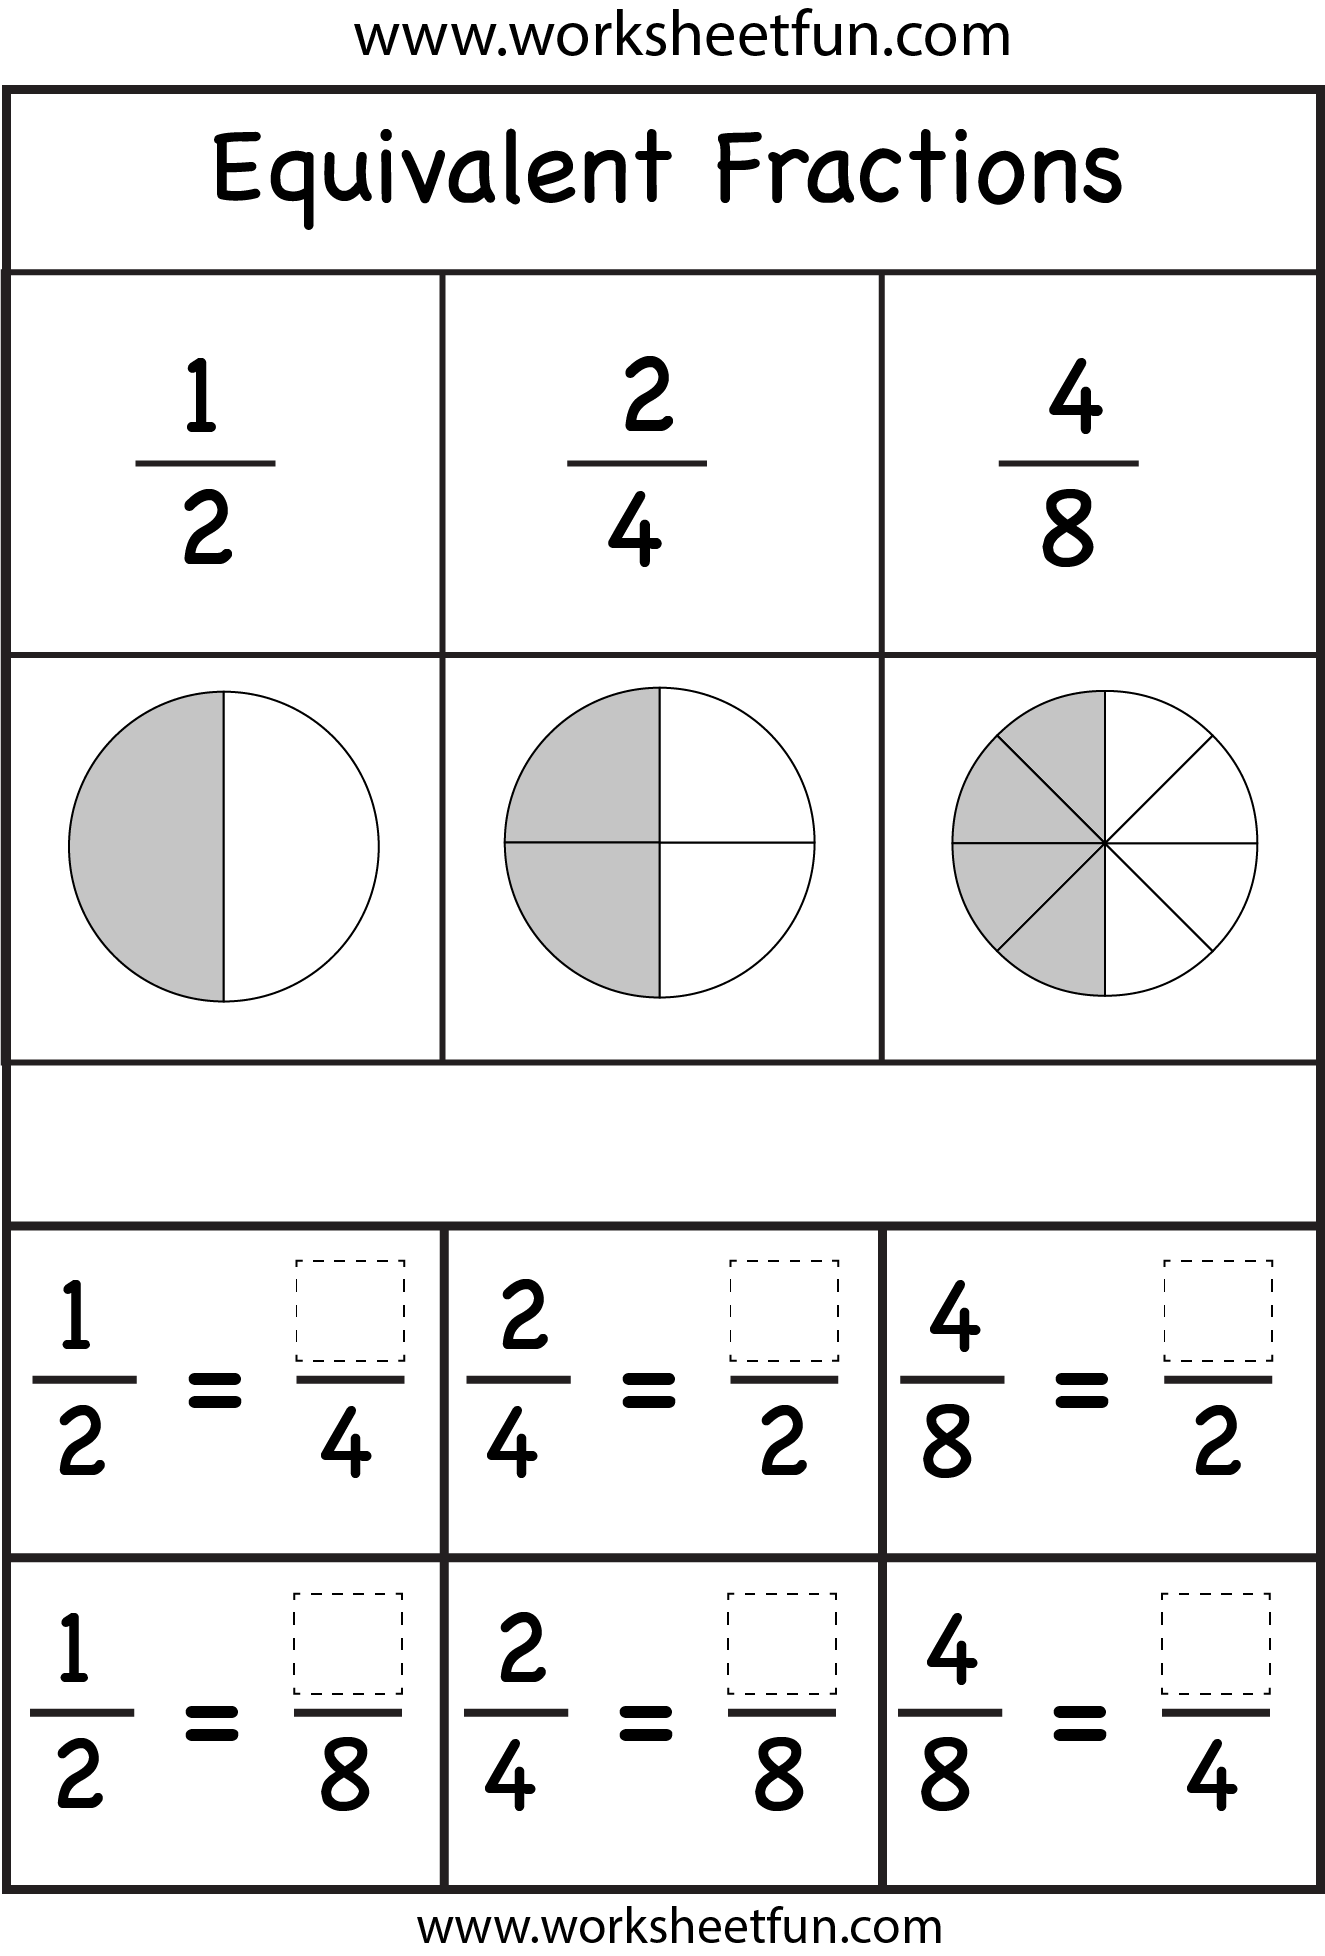 Equivalent Fractions - 2 Worksheets | Homeschool/Math | Pinterest ...